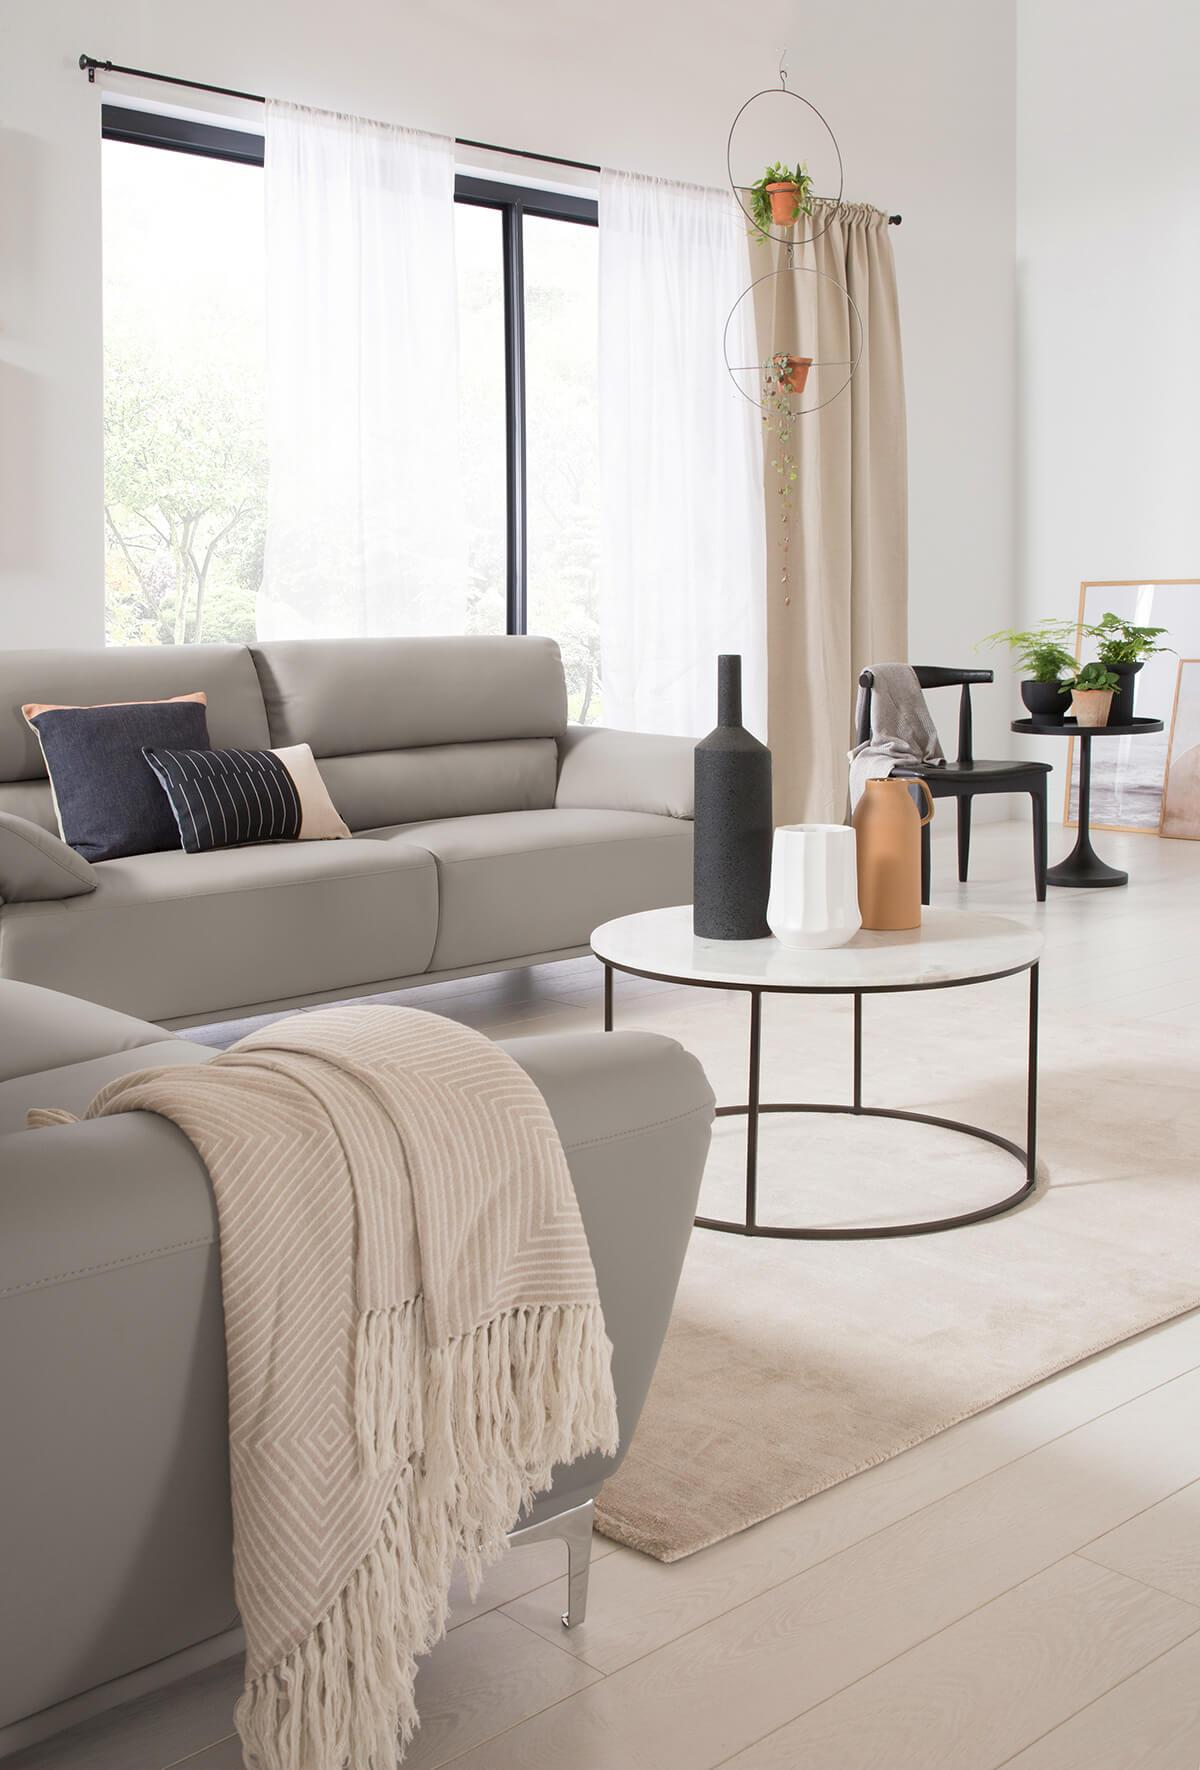 Trends By Furniture Choice